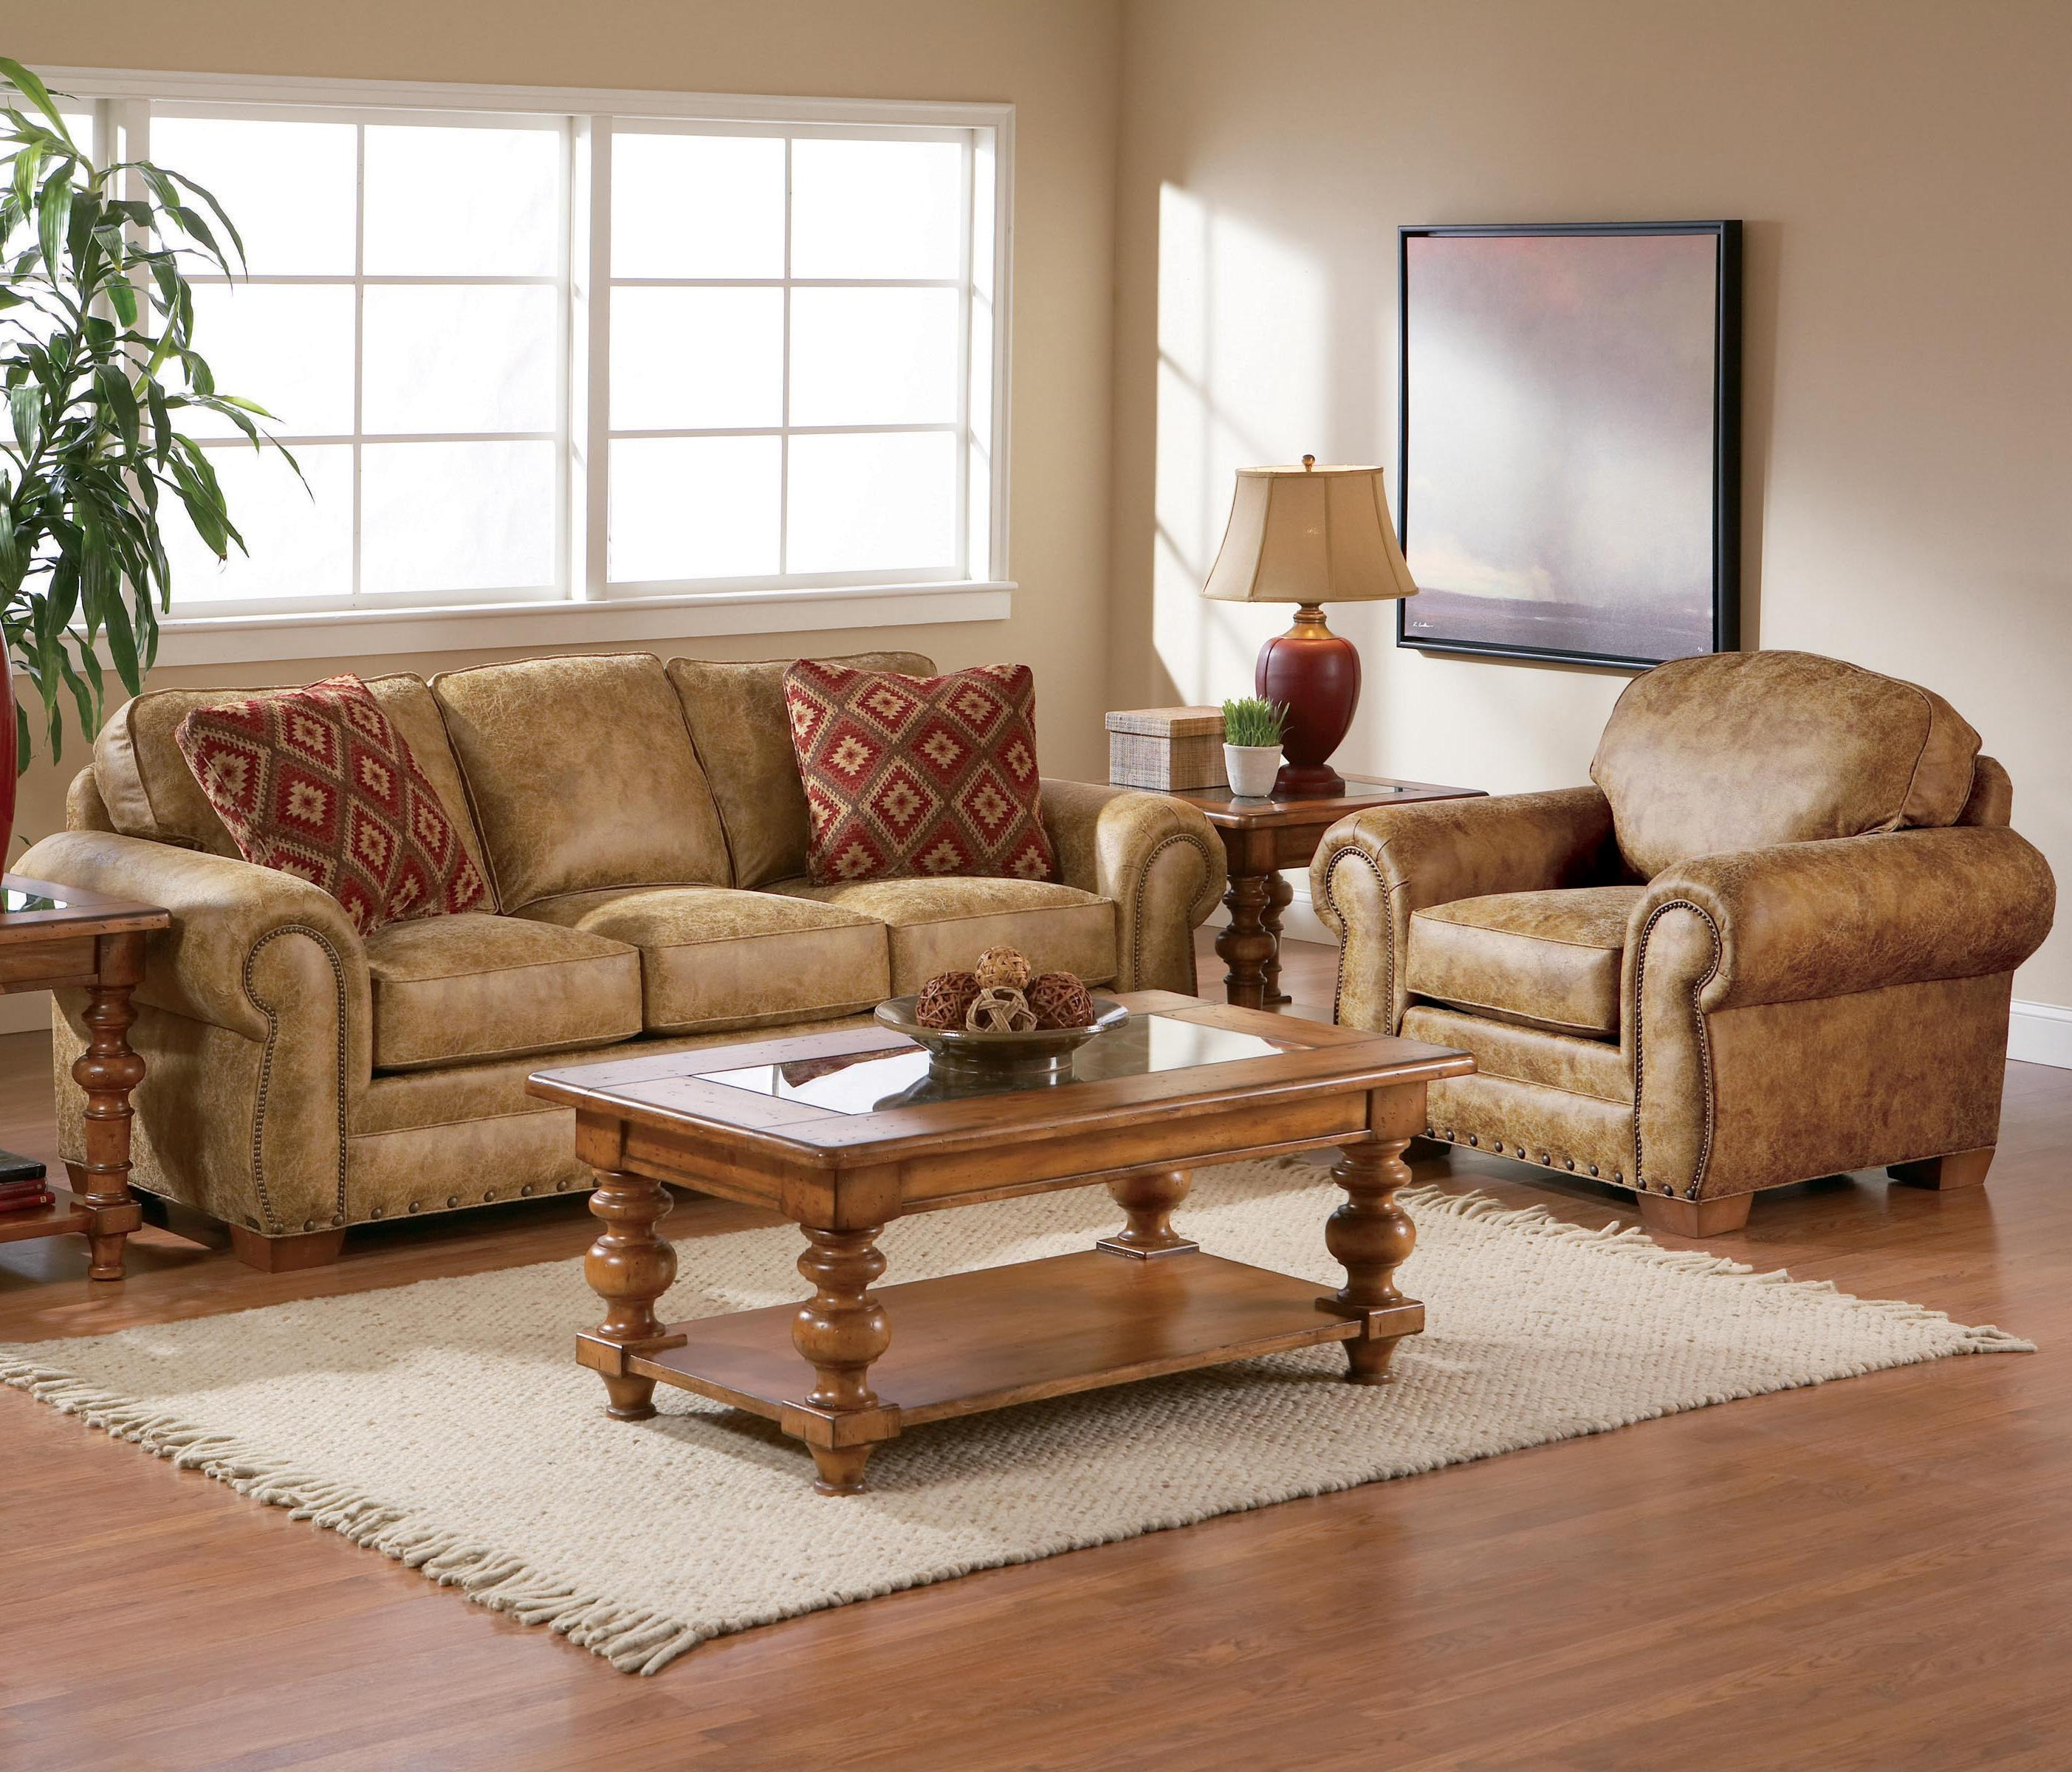 Broyhill Furniture Cambridge Queen Irest Sleeper Sofa Lindy S Company Sofas